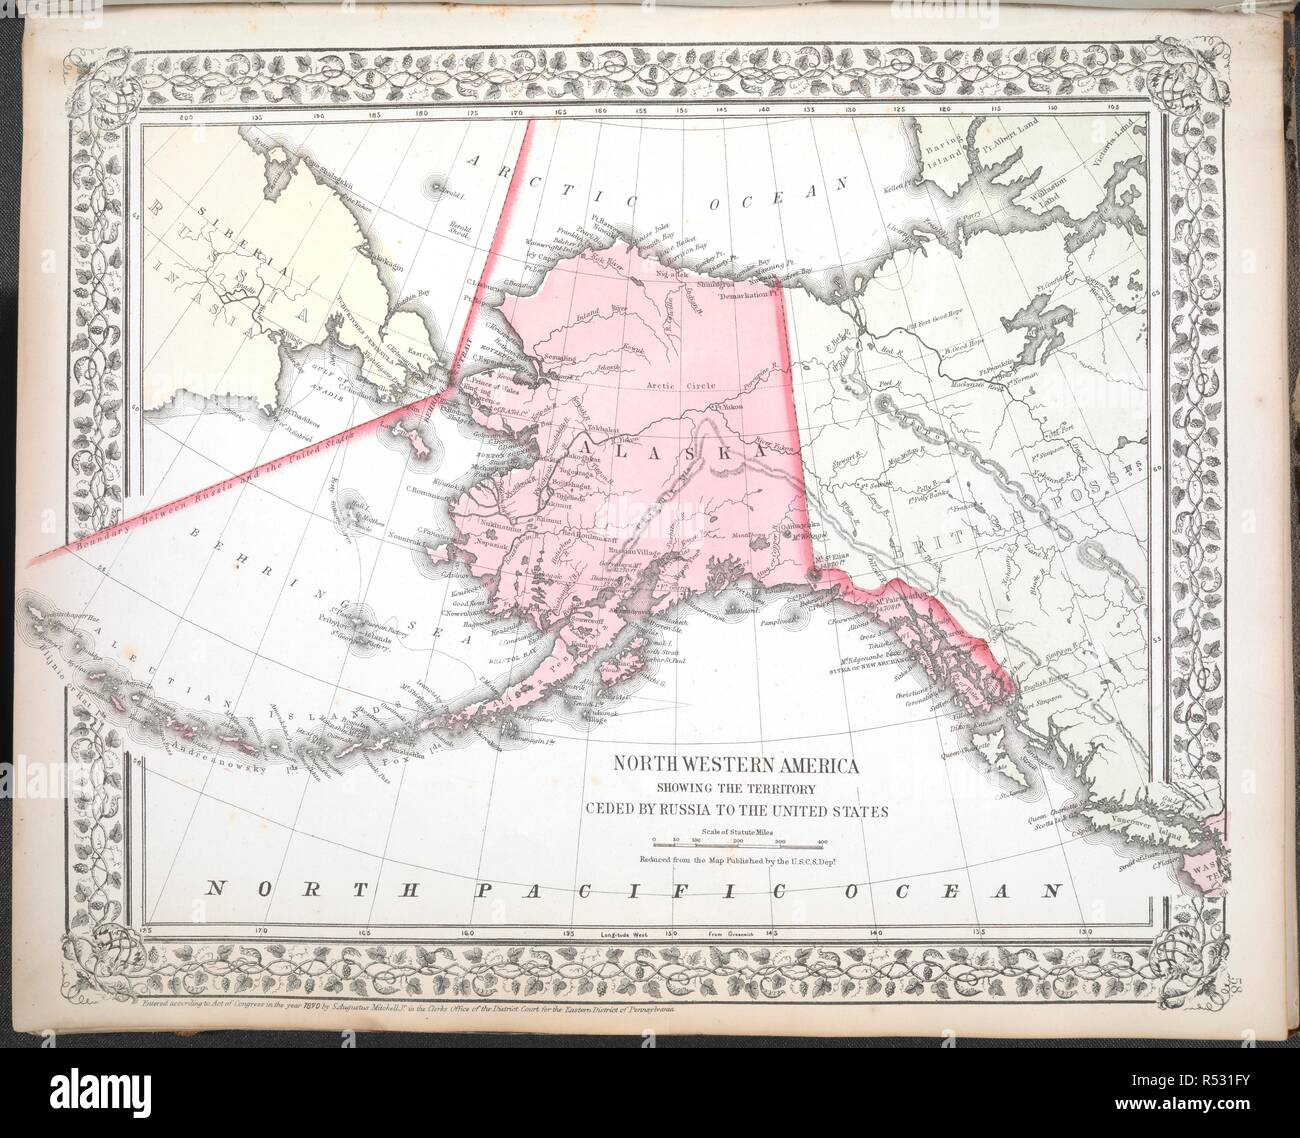 North Western America showing the territory ceded by Russia ...